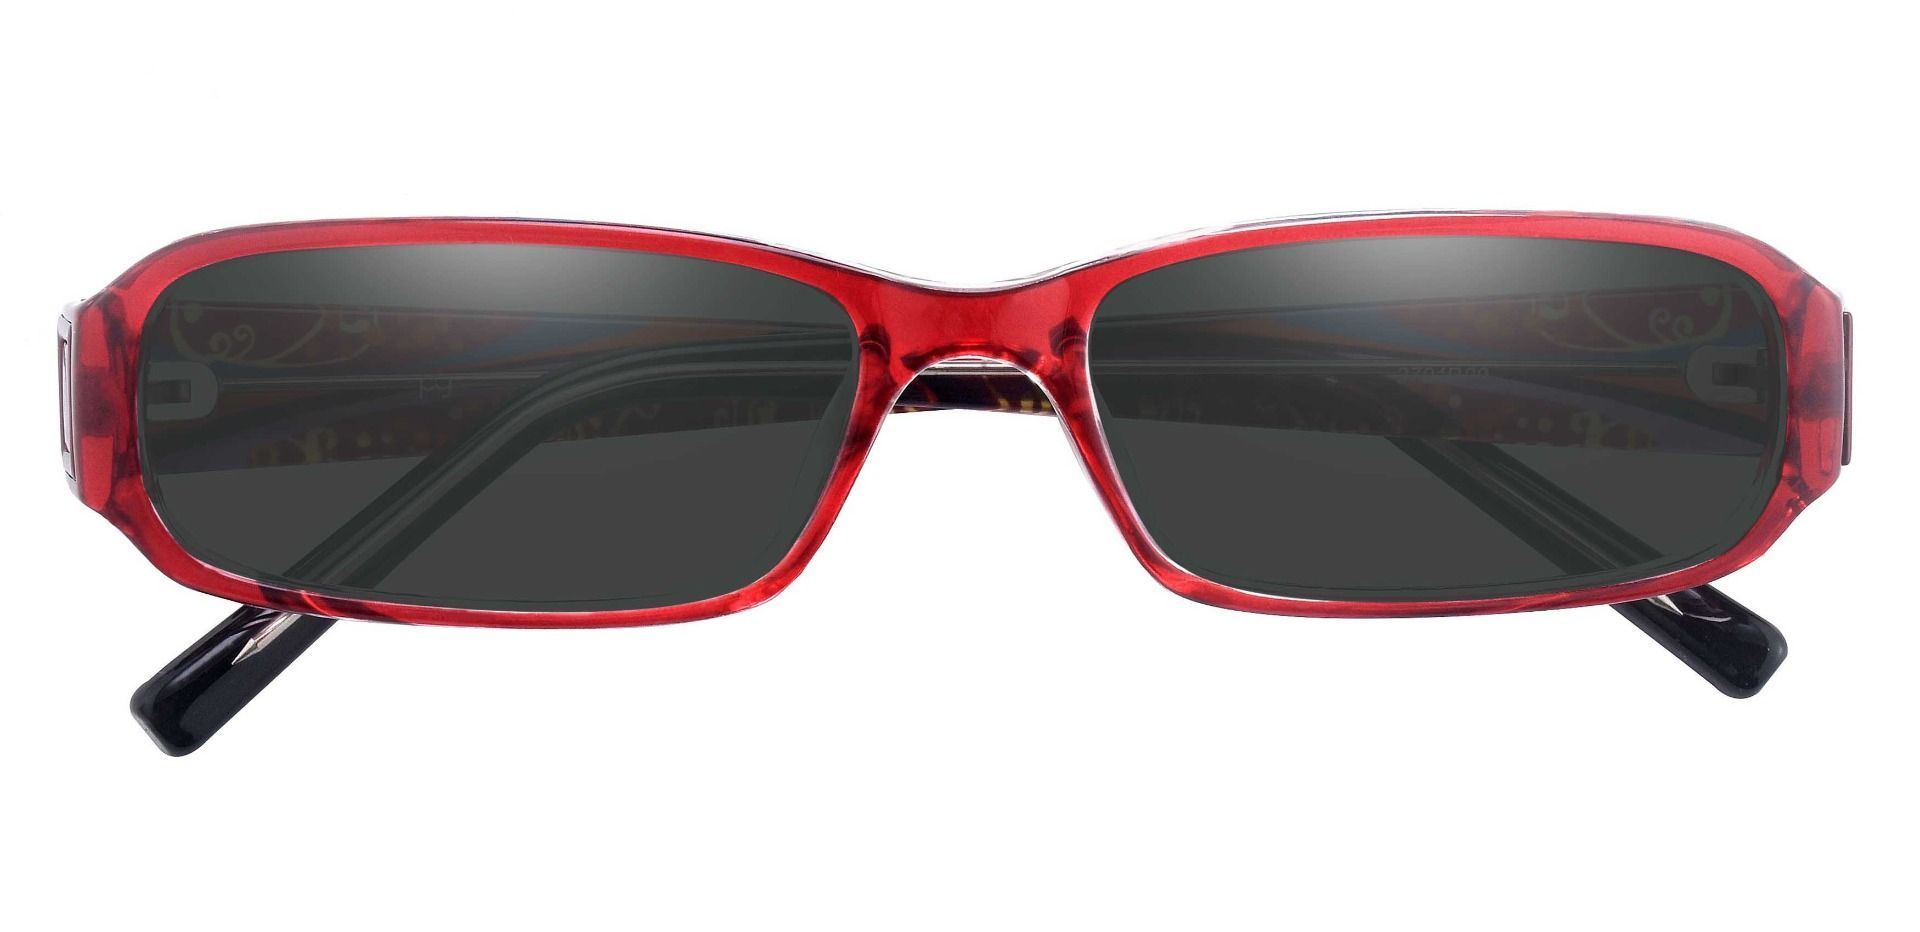 Coral Rectangle Single Vision Sunglasses -  Red Frame With Gray Lenses